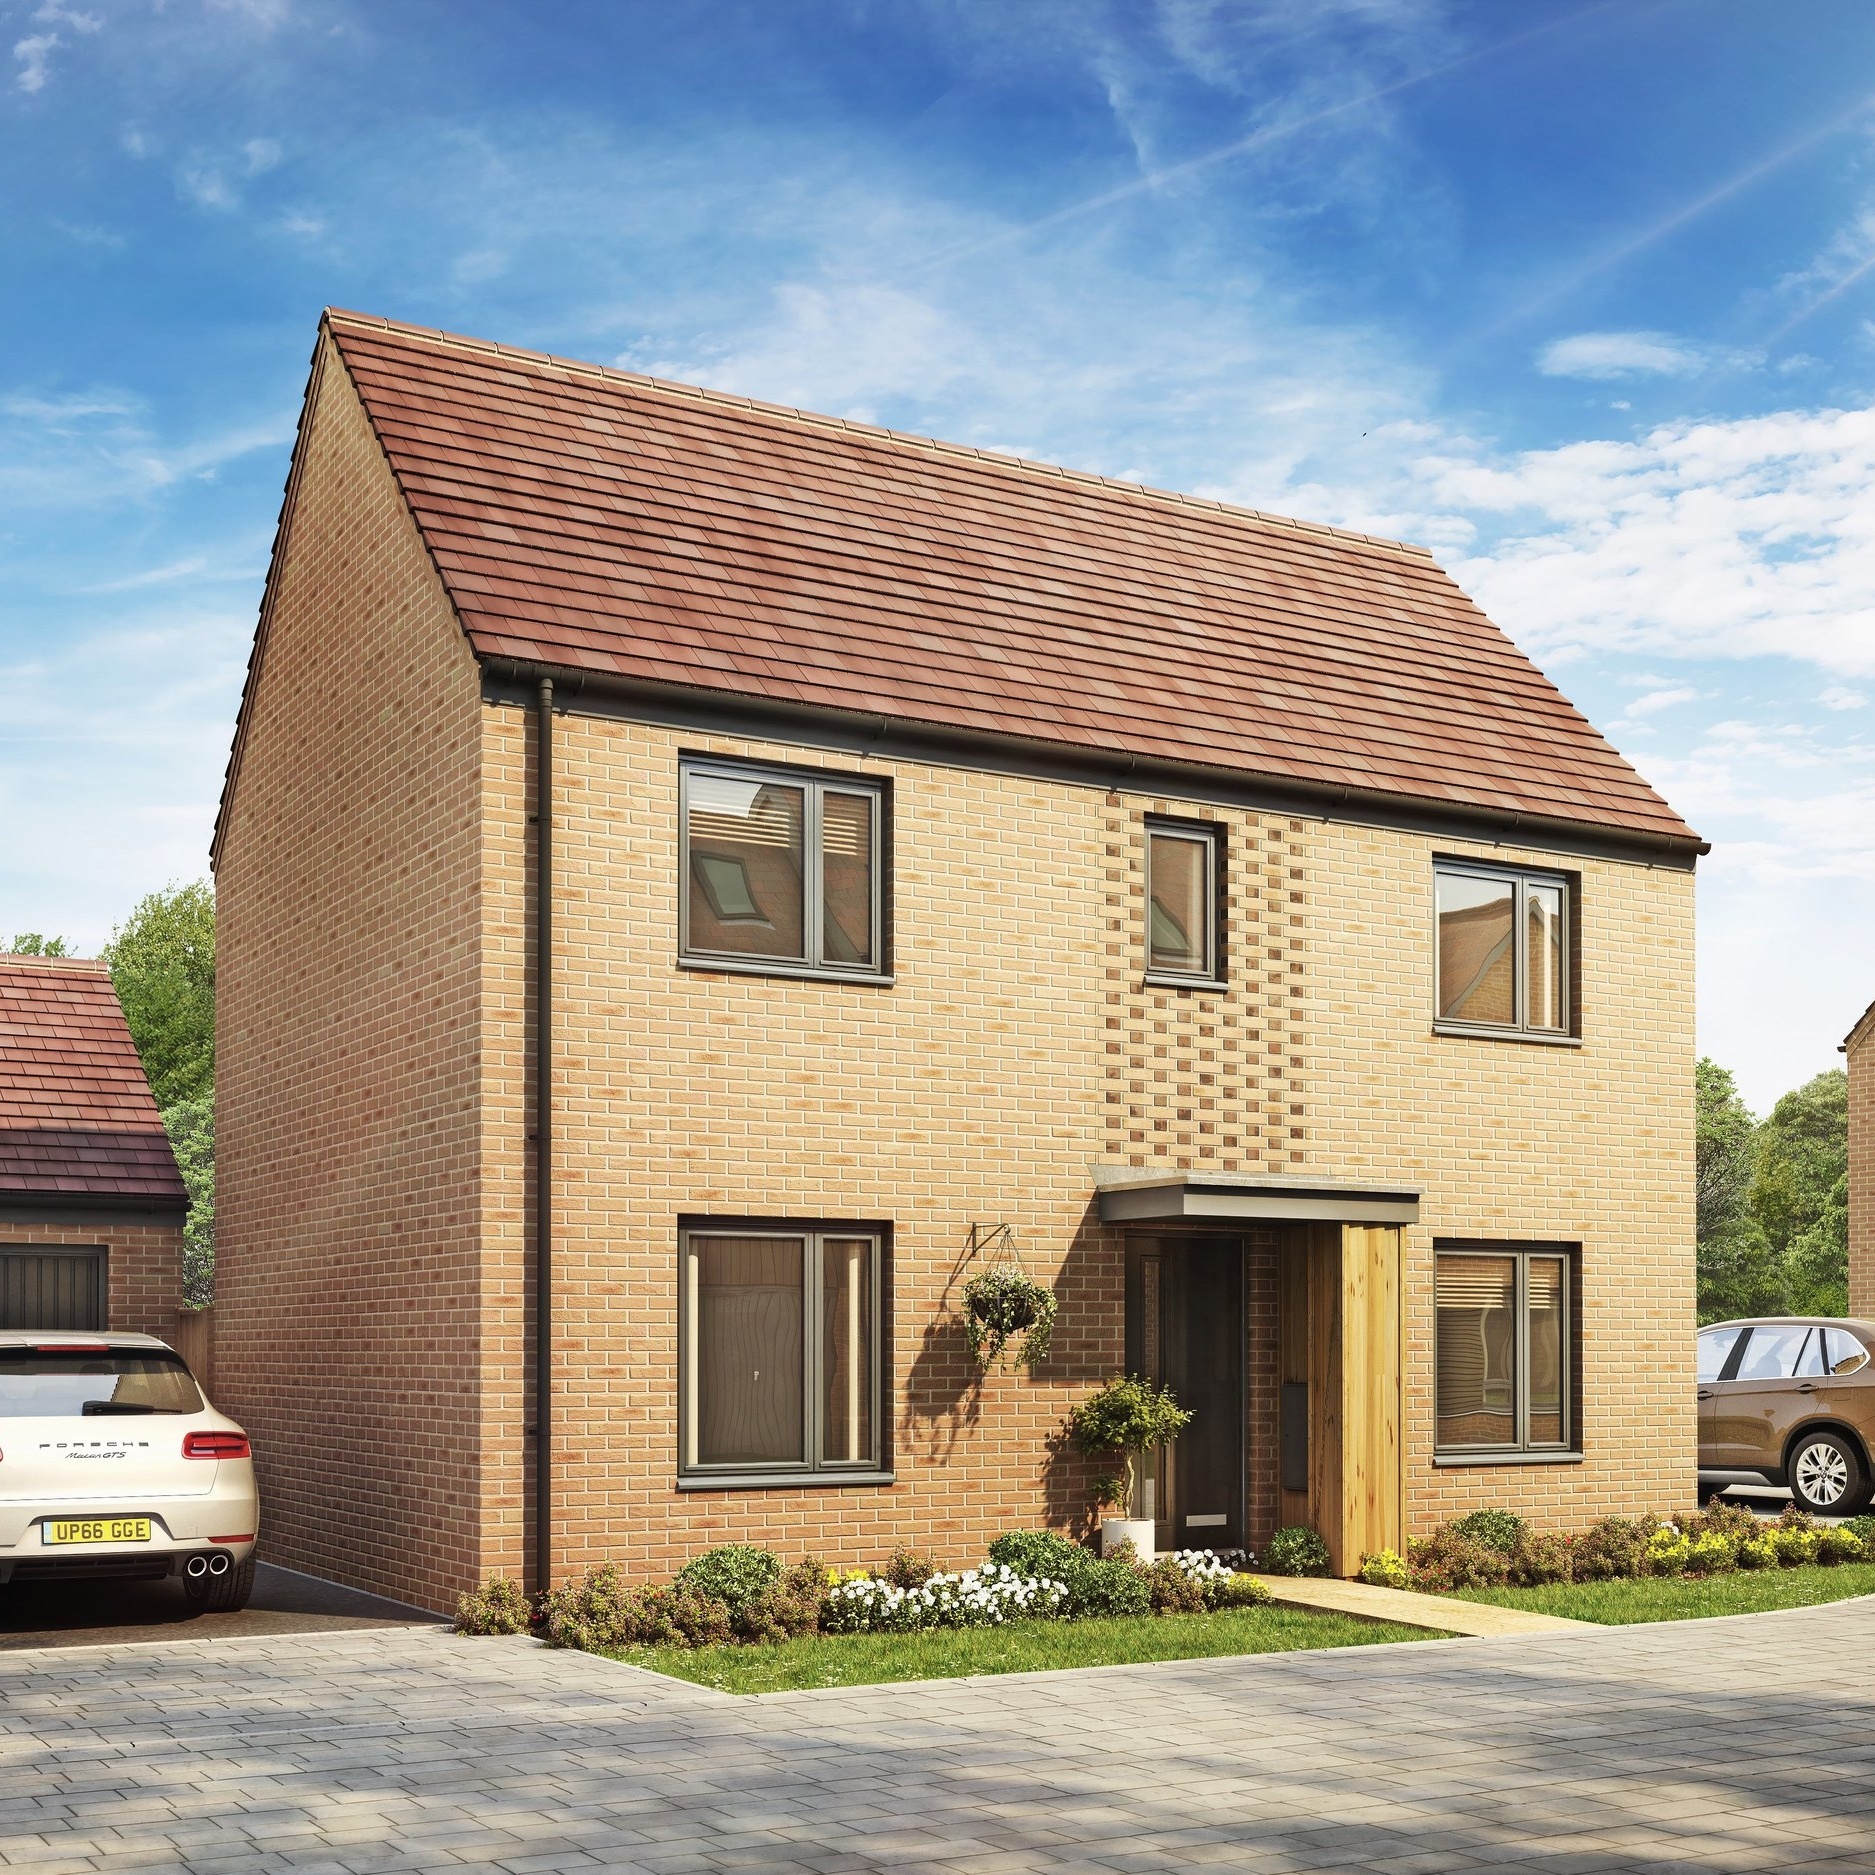 TAYLORWIMPEY - 2 bedroom apartments and3, 4 & 5 bedroom homes from£234,995 to £529,995